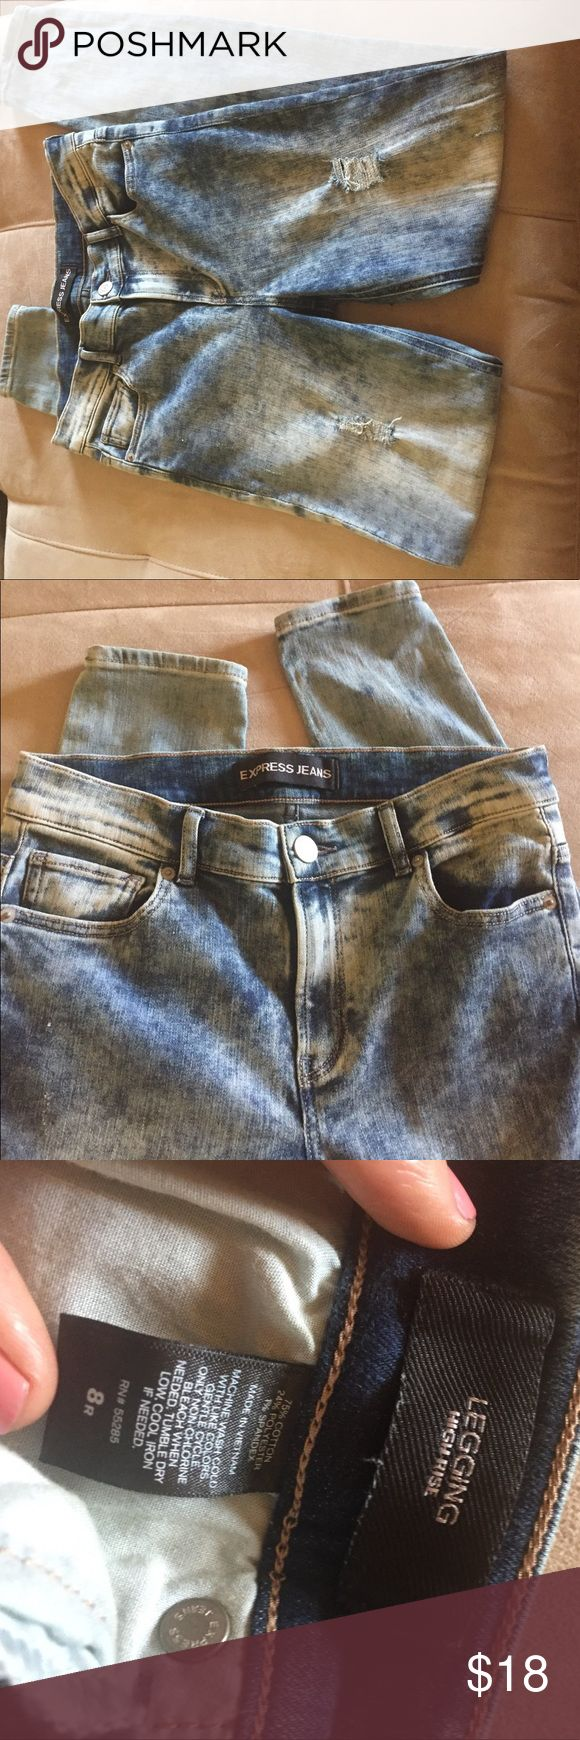 Express legging Jeans- acid washed and torn⚡️ Express jeggings! Good condition✨ Super comfortable! Express Pants Leggings